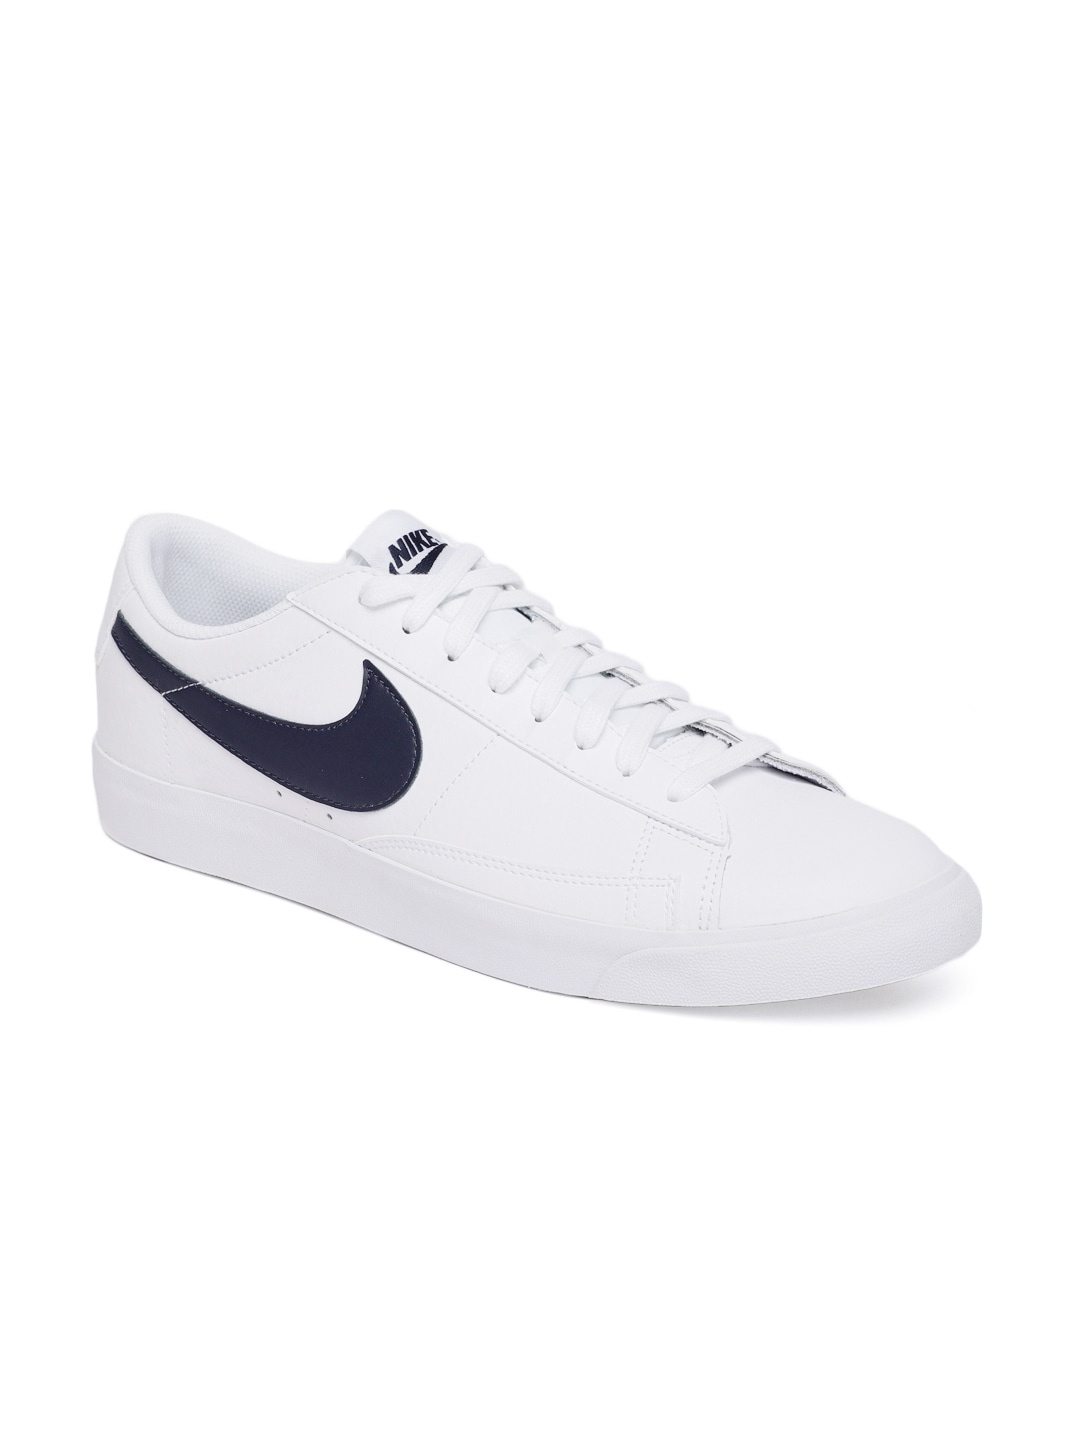 e37cffa02d46 Nike Blazer Shoes - Buy Nike Blazer Shoes online in India